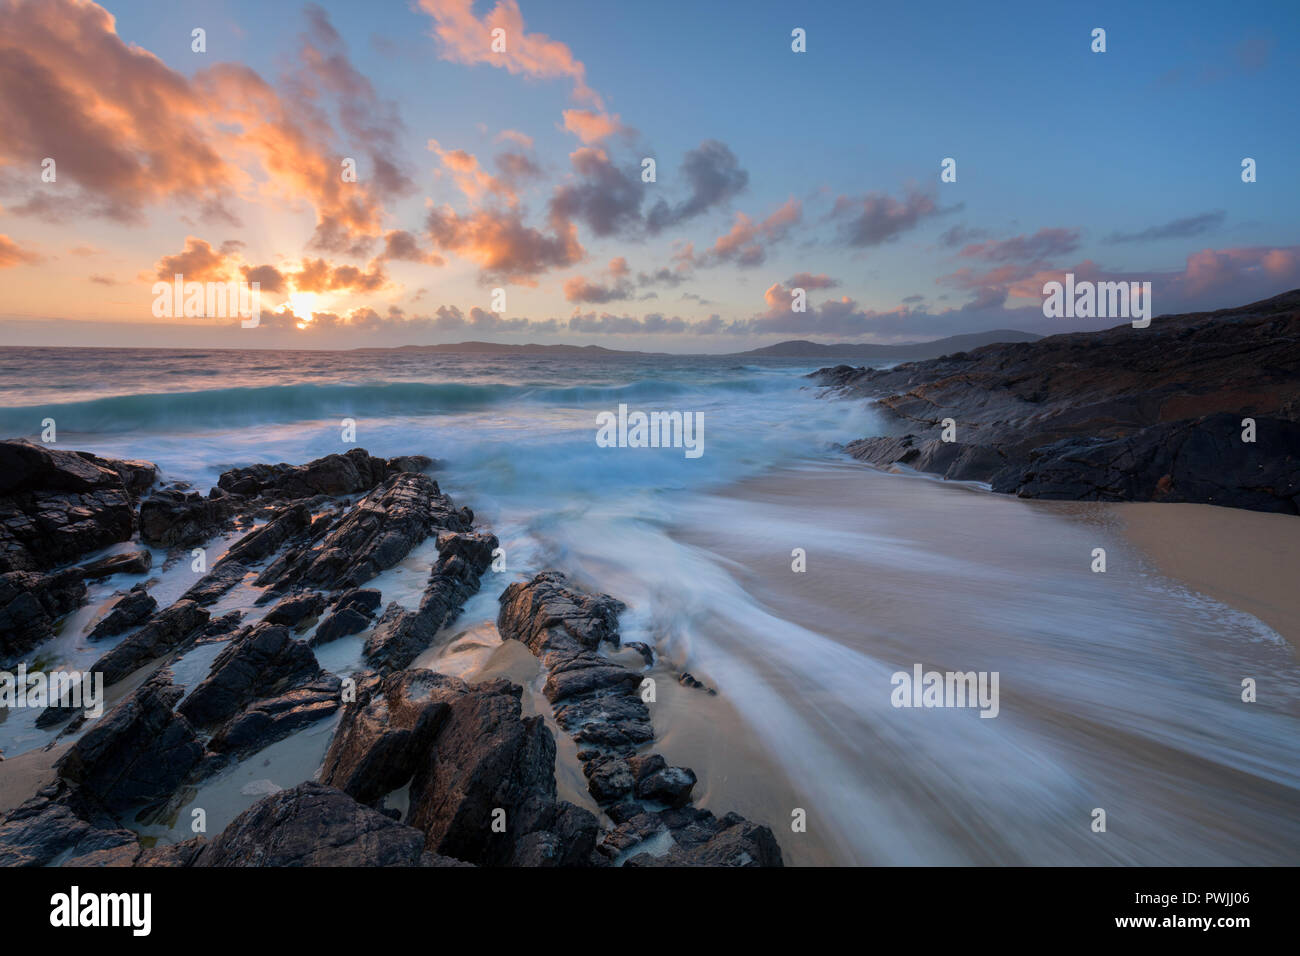 Receding wave in a small cove at sunset, Harris, Outer Hebrides, Scotland Stock Photo